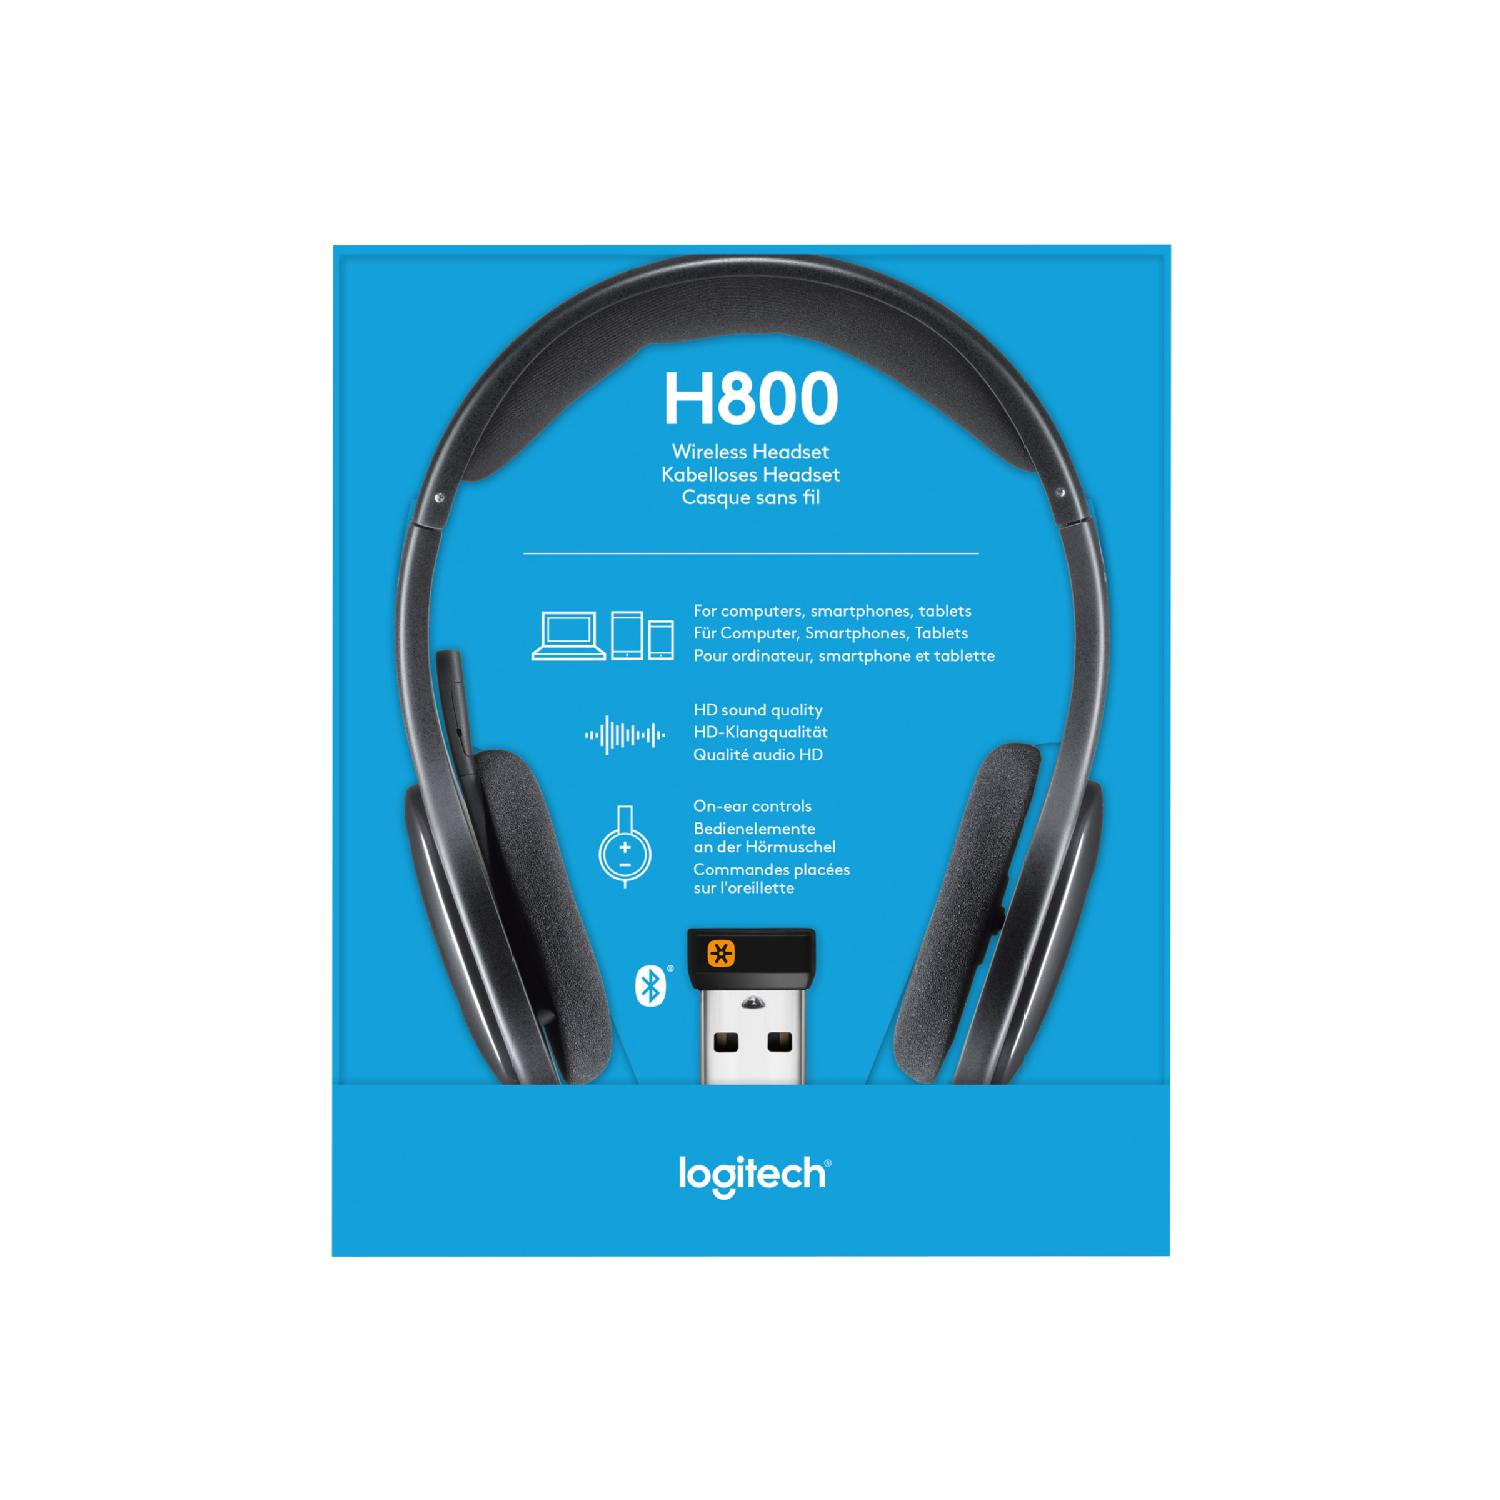 Logitech Wireless Headset H800 Headset Grand Toy